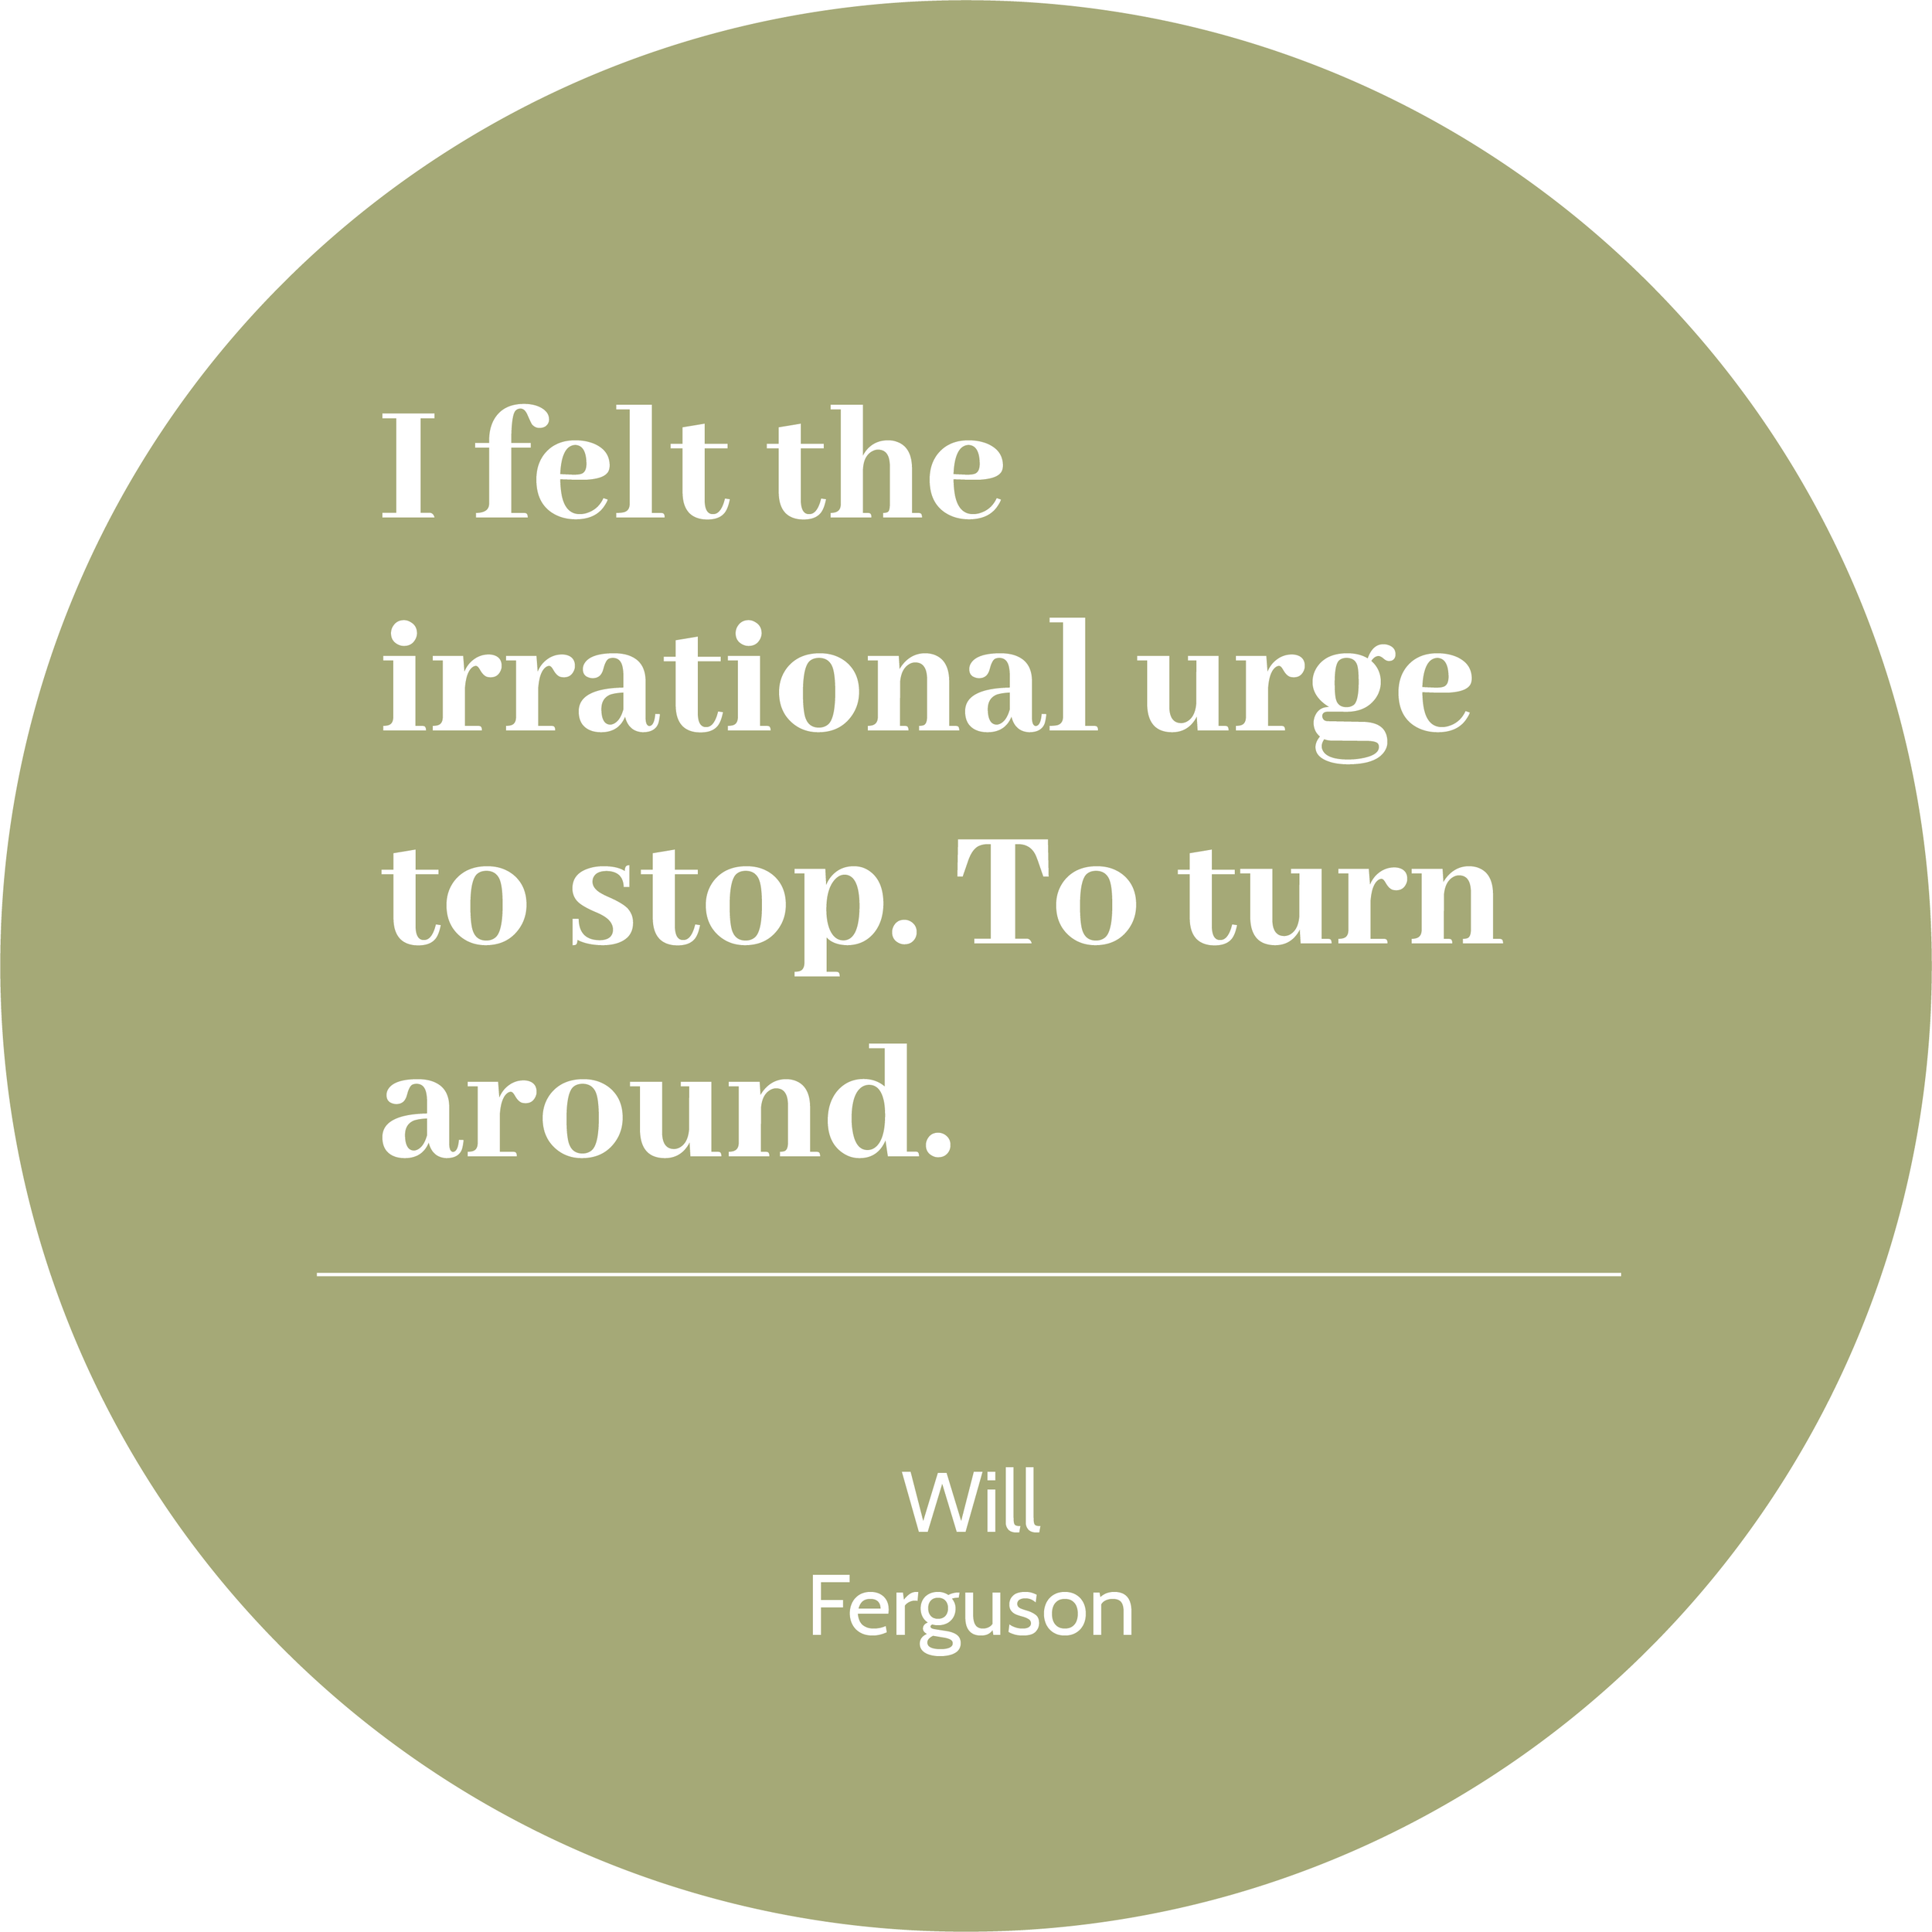 Will Ferguson quote 6 2019.04.24.png